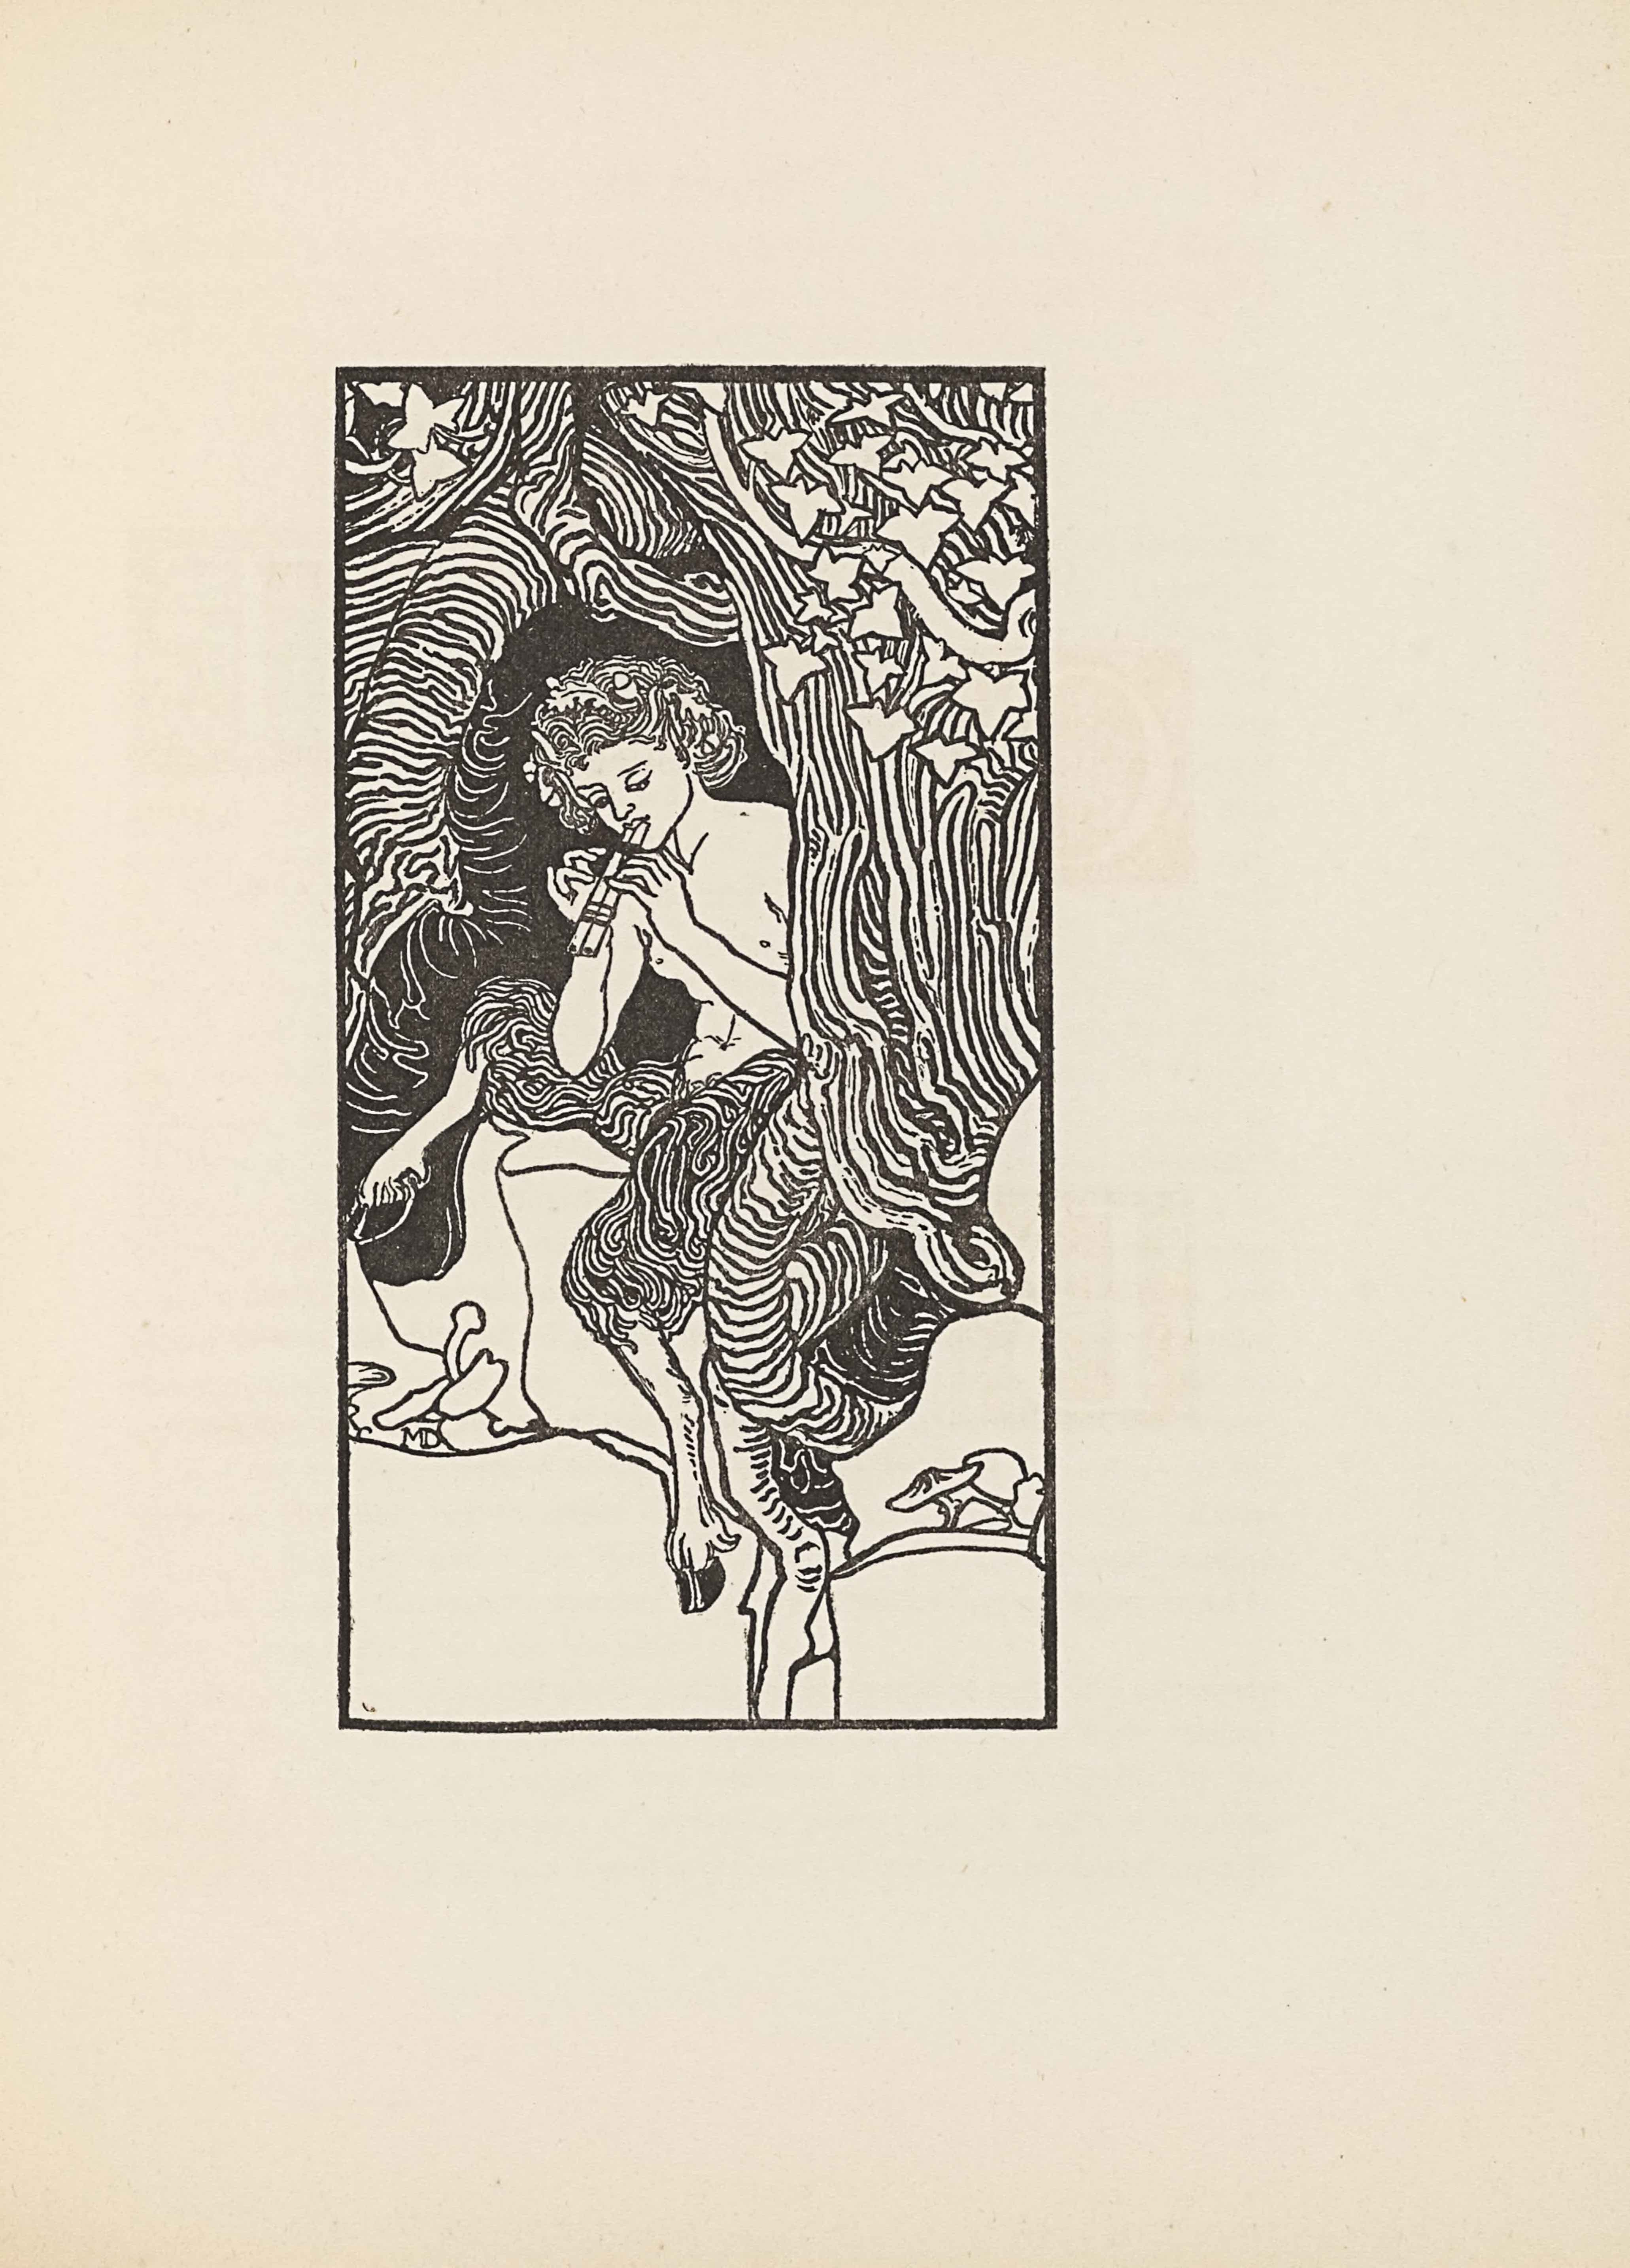 "The line-block reproduction of Mabel Dearmer's pen-and-ink drawing is bordered by a rectangular box in portrait orientation. The illustration is of a satyr or faun sitting on a stump in the hollow of a tree. He has a wreath of leaves in his hair and is playing panpipes. The tree has roots that spiral around the satyr and descend into the ground by his left hoof. There are mushrooms on both sides of the the trunk, sprouting from the ground. The artist's initials are tucked under a mushroom on the left side of the page, they read: ""MD"" [caps]. In the bottom third of the image is open space. The surrounding tree is composed of distinct lines that often run parallel to one another. In the top third of the illustration, the wood is covered in white ivy leaves."